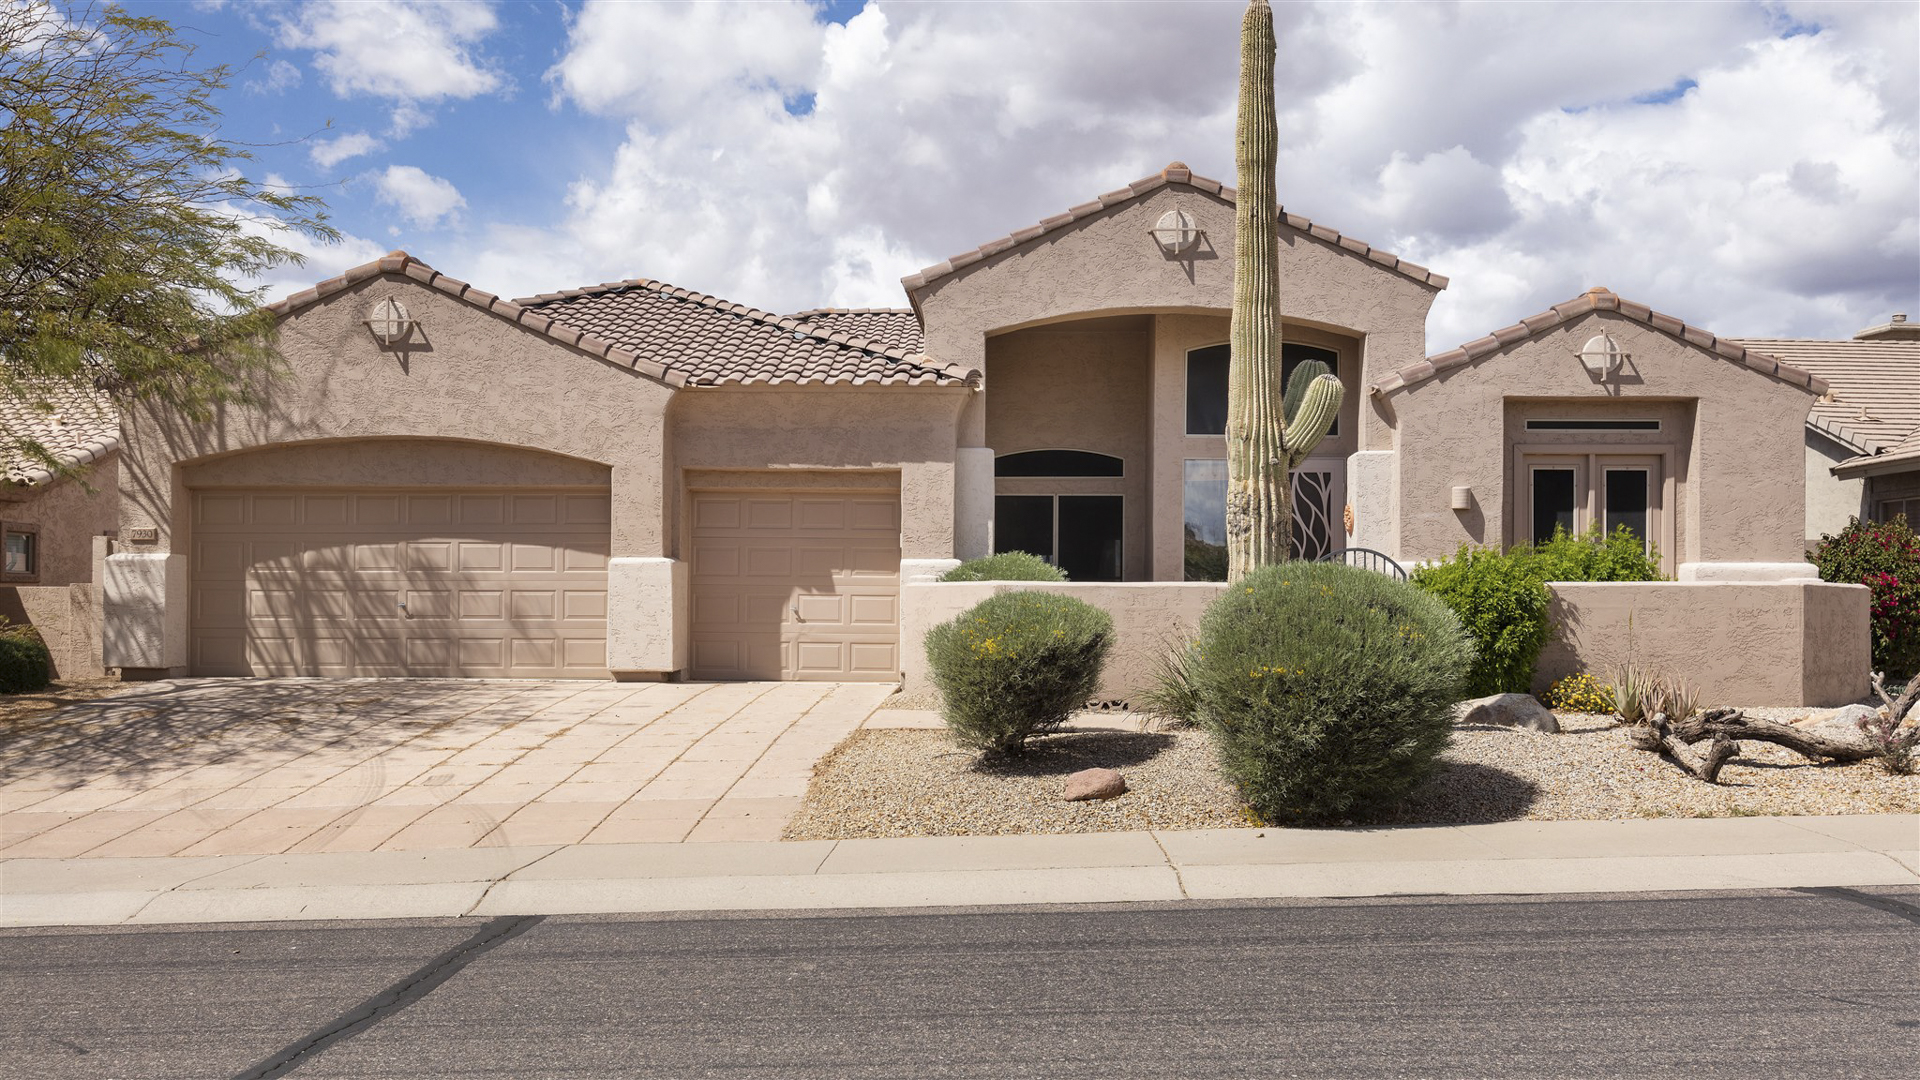 ON THE MARKET - 7930 E Dalea Way, Gold Canyon, AZ 85118 - Superstition Foothills | Amy Jones Group